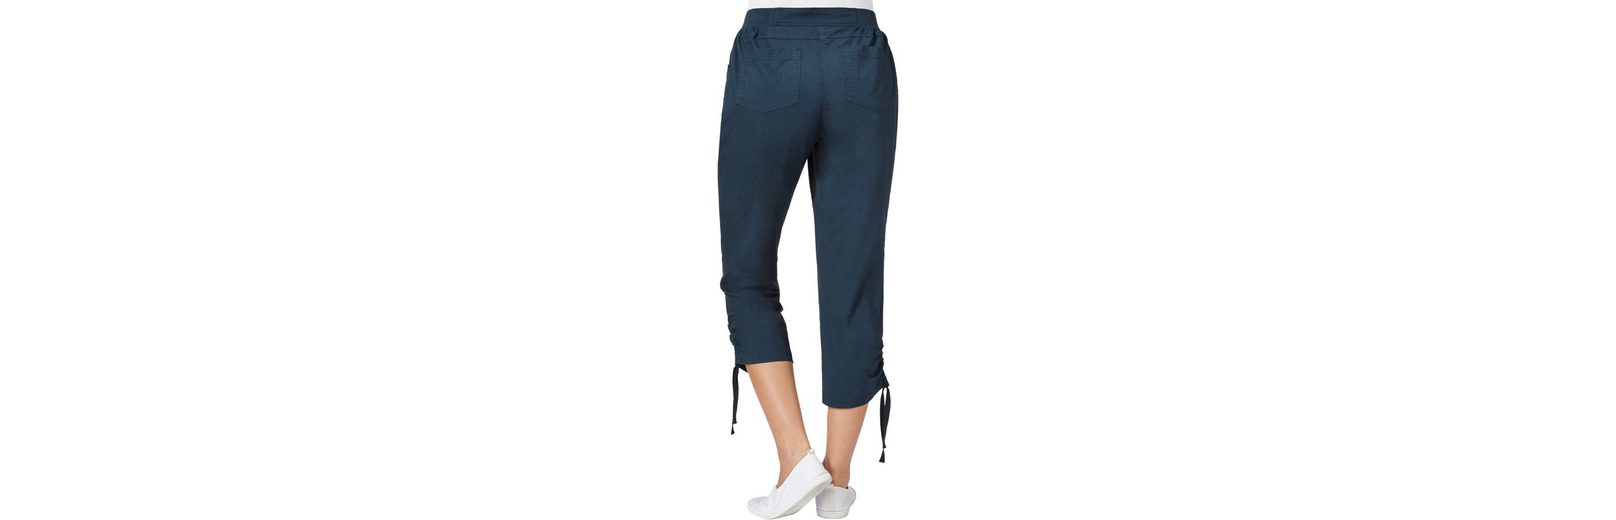 Collection L. 3/4-Hose mit variabler Länge Qualität Outlet-Store bRnj73V